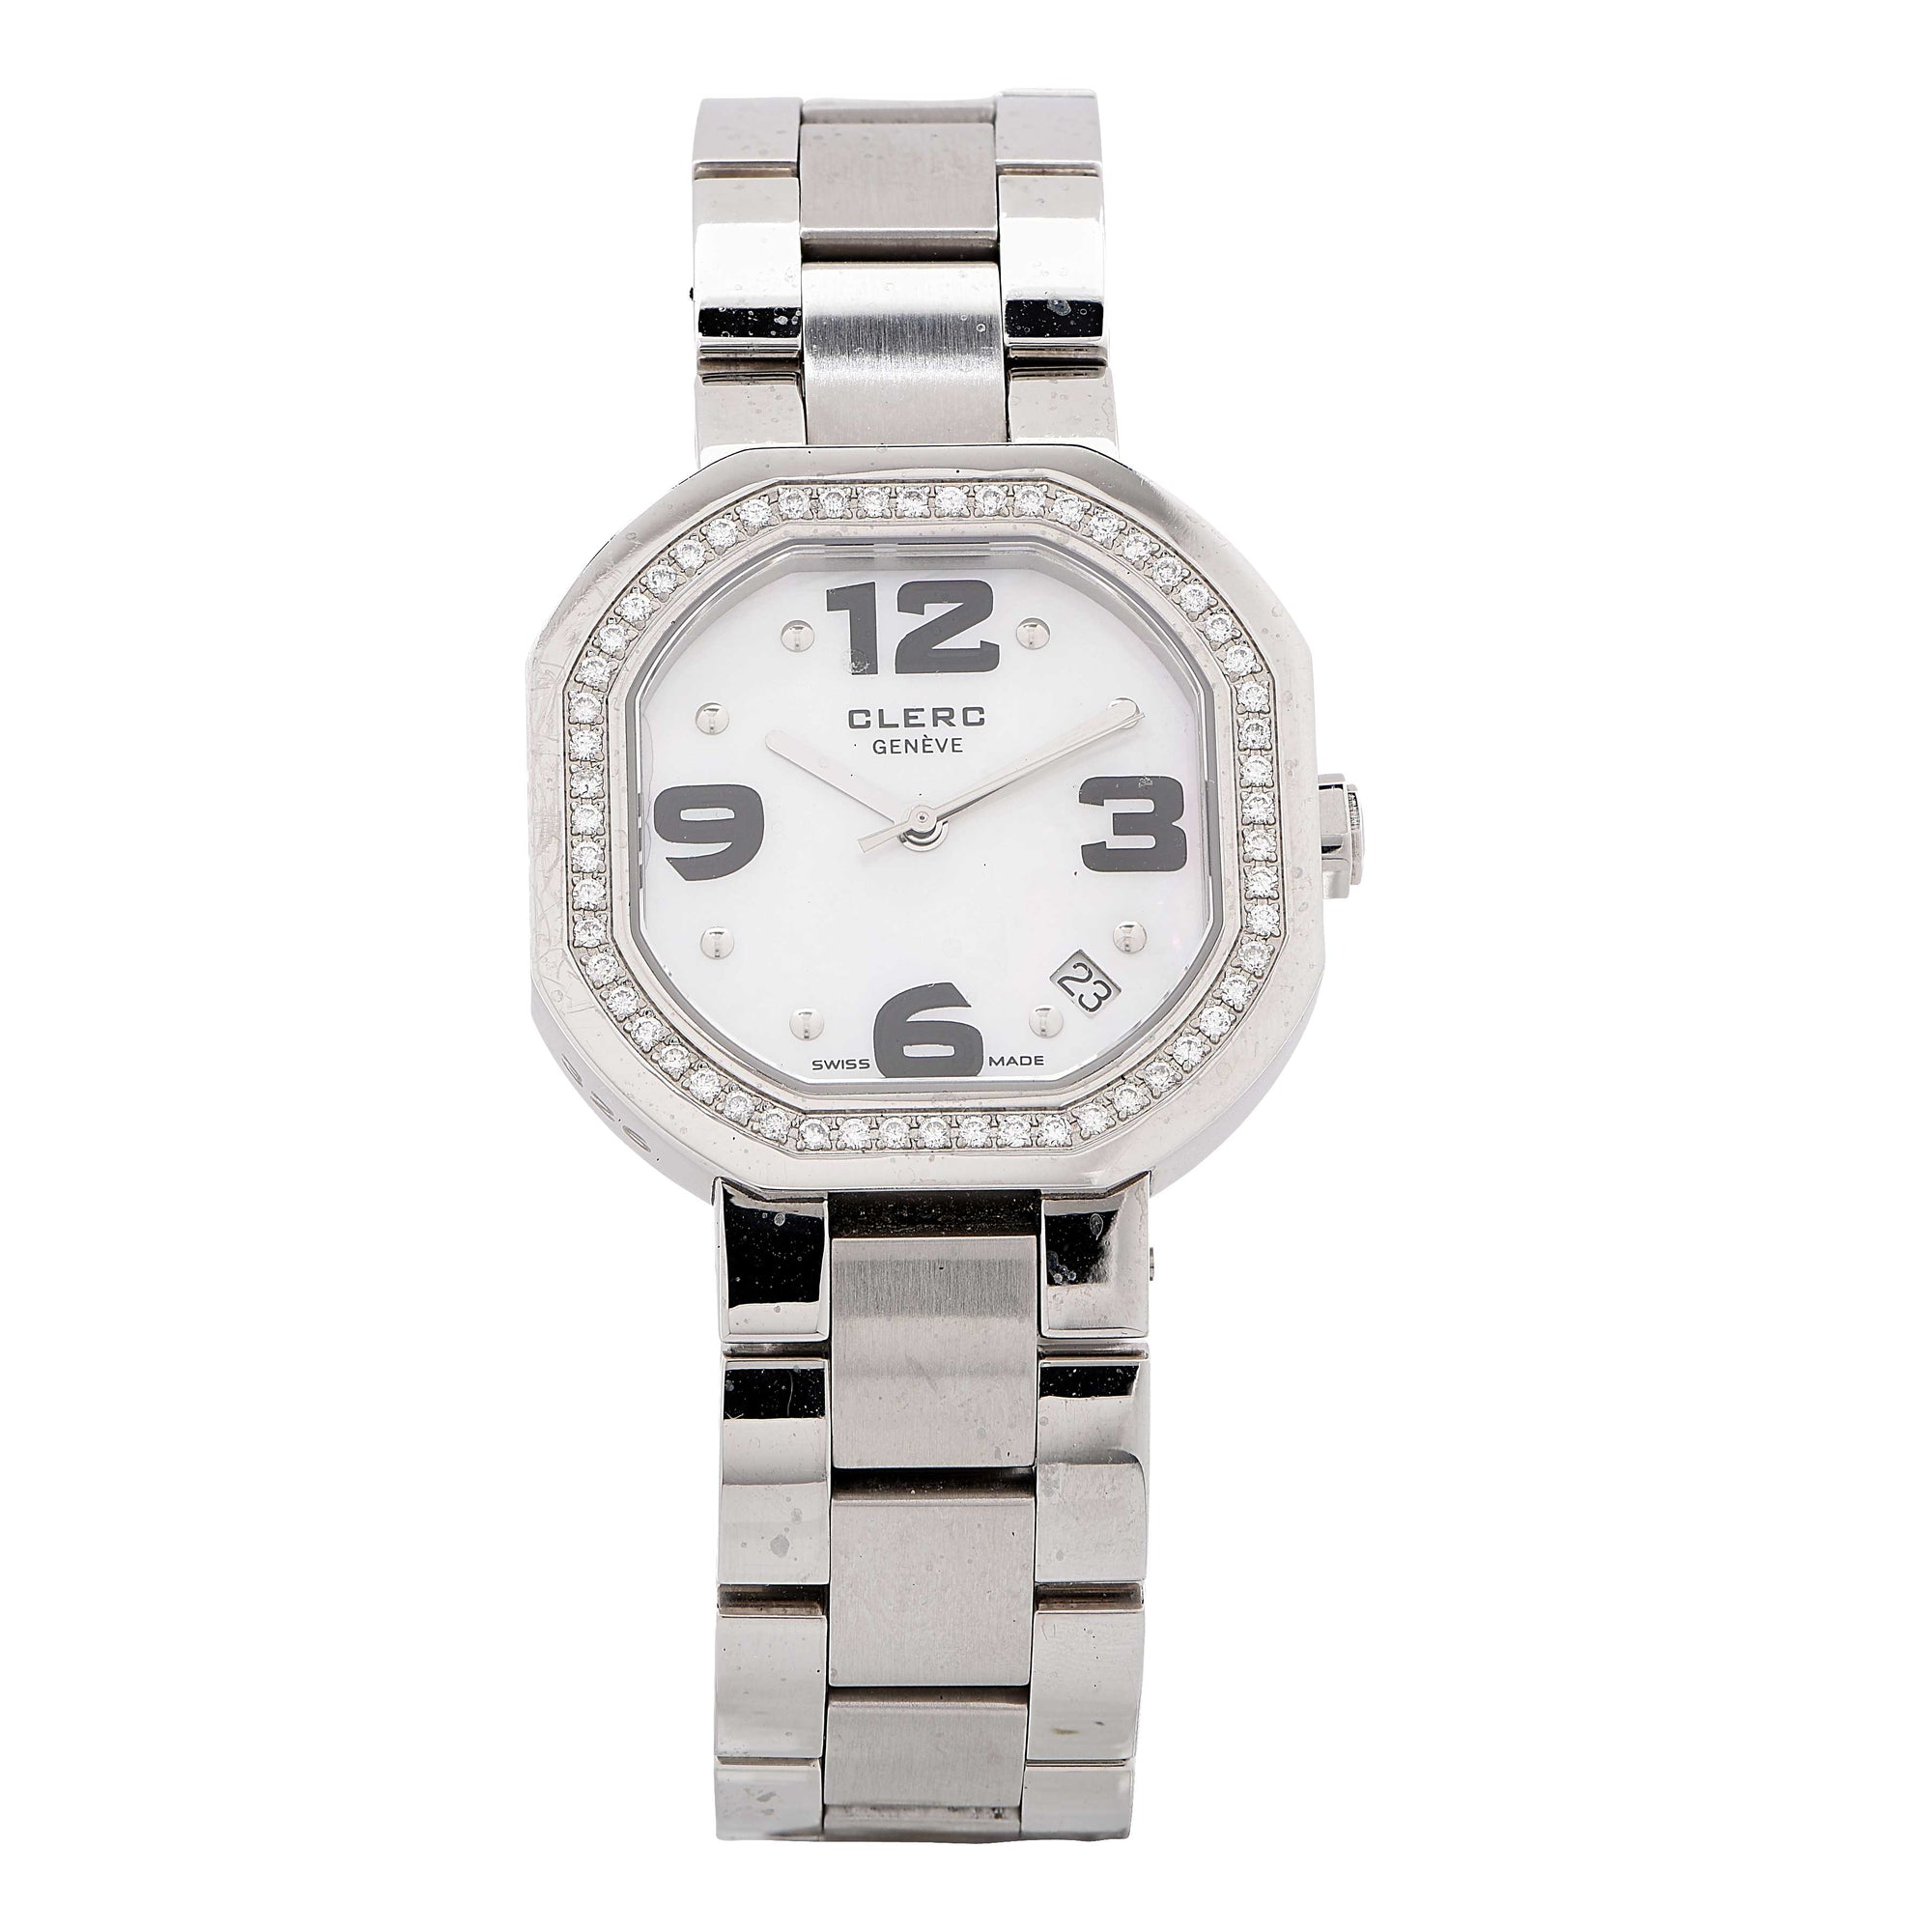 Clerc Iadies Stainless Steel Mother-of-Pearl Dial Diamond Bezel Wristwatch